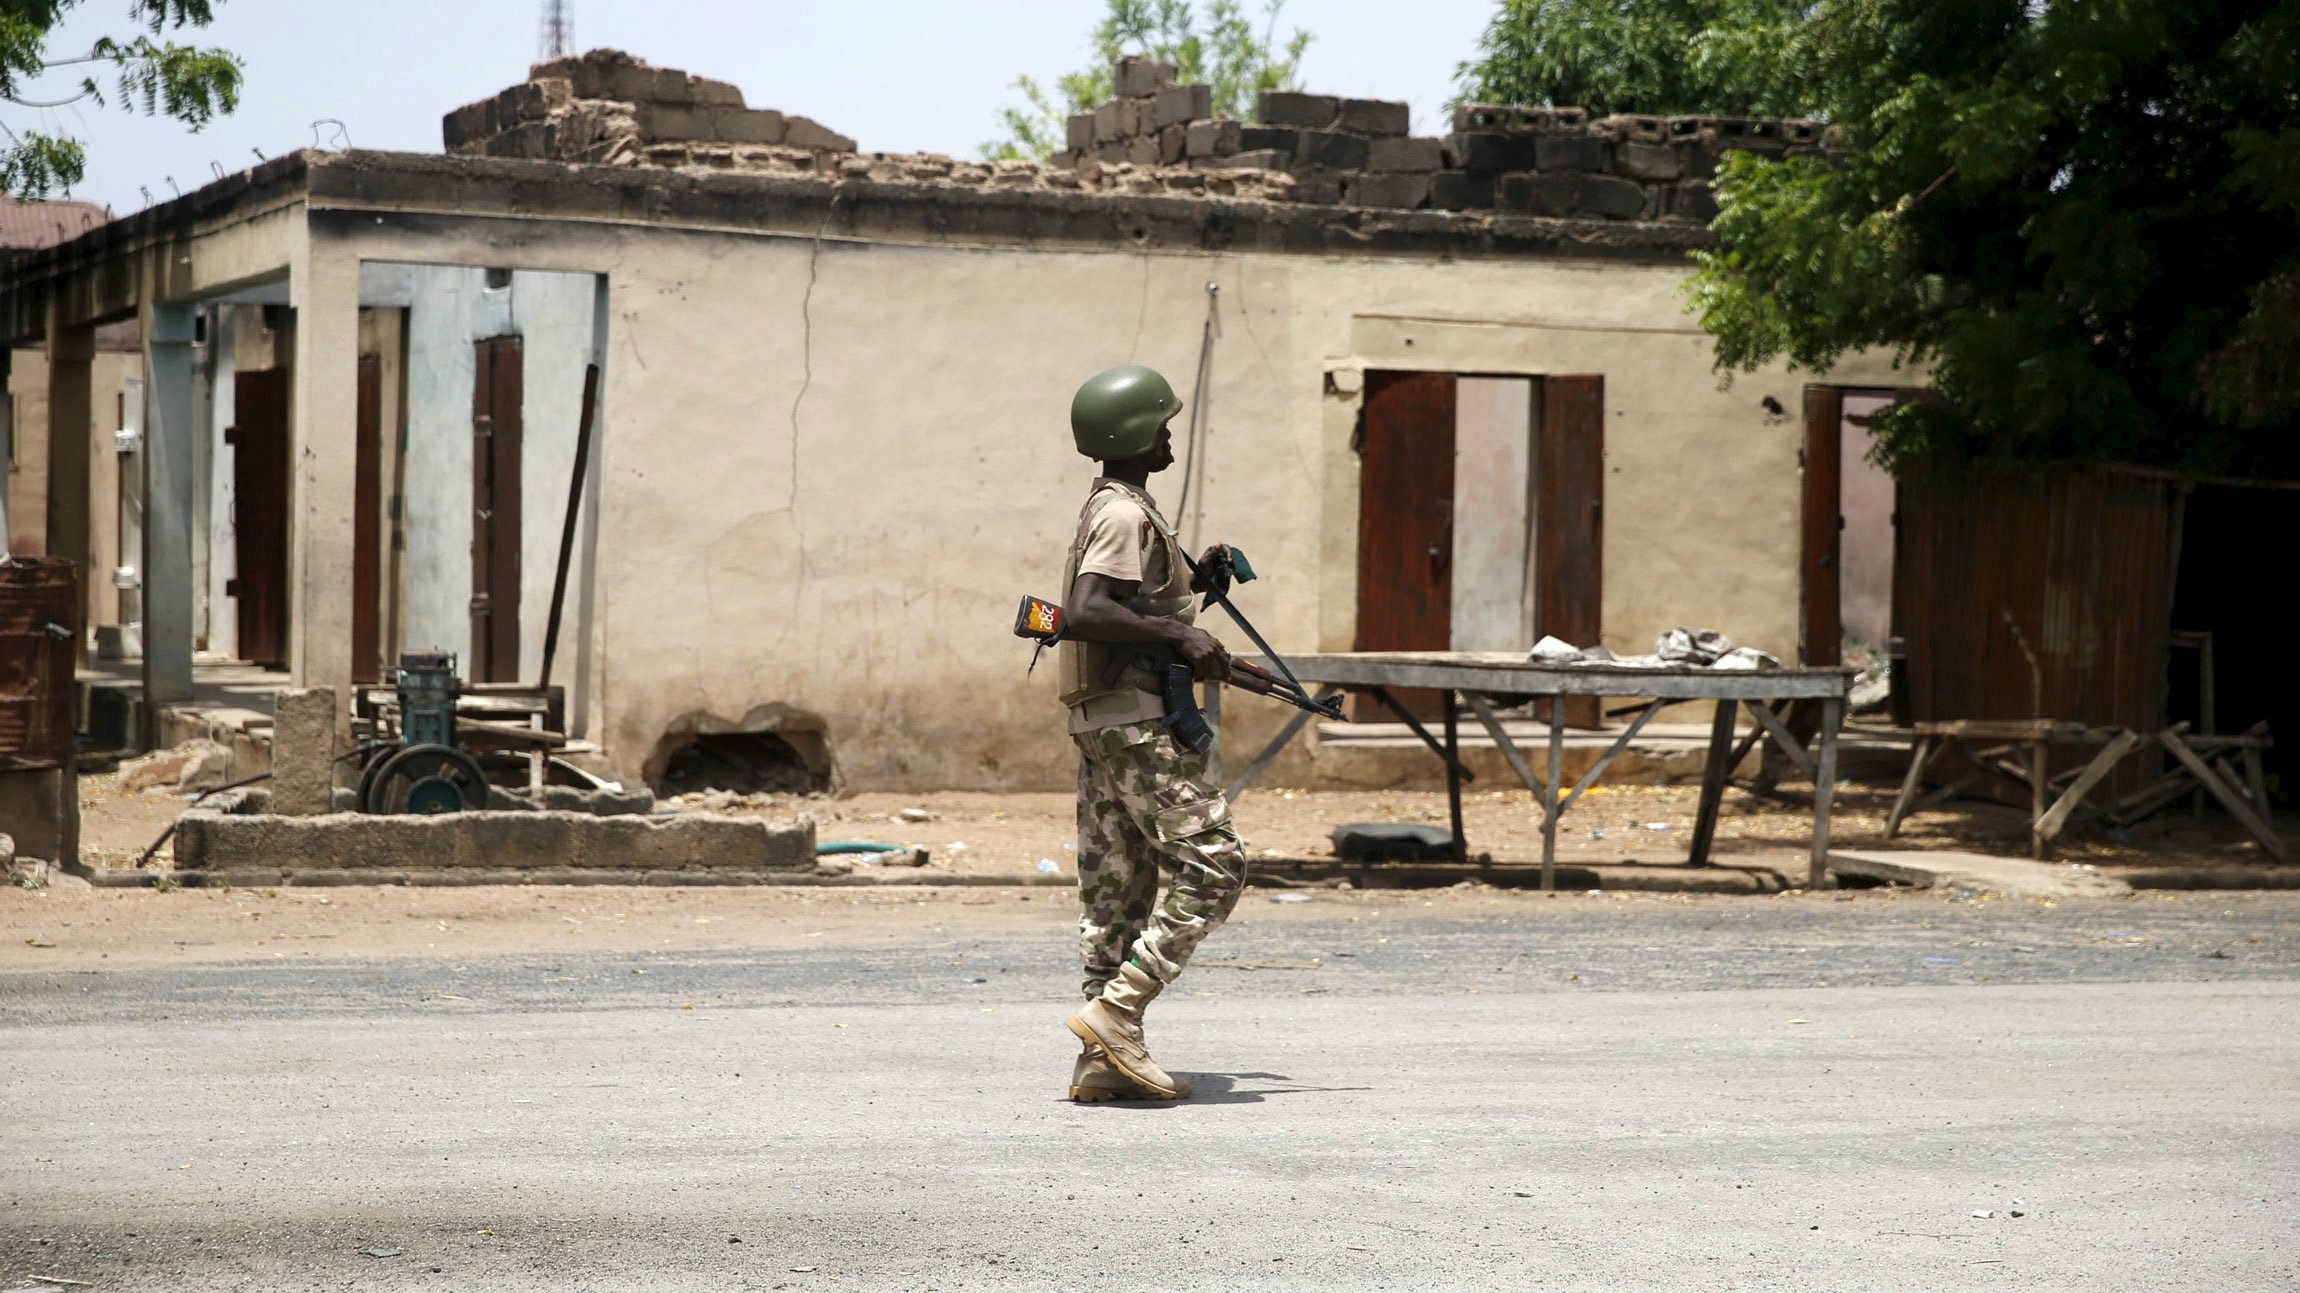 A soldier walks past a burnt building in Michika town, after the Nigerian military recaptured it from Boko Haram, in Adamawa state May 10, 2015.